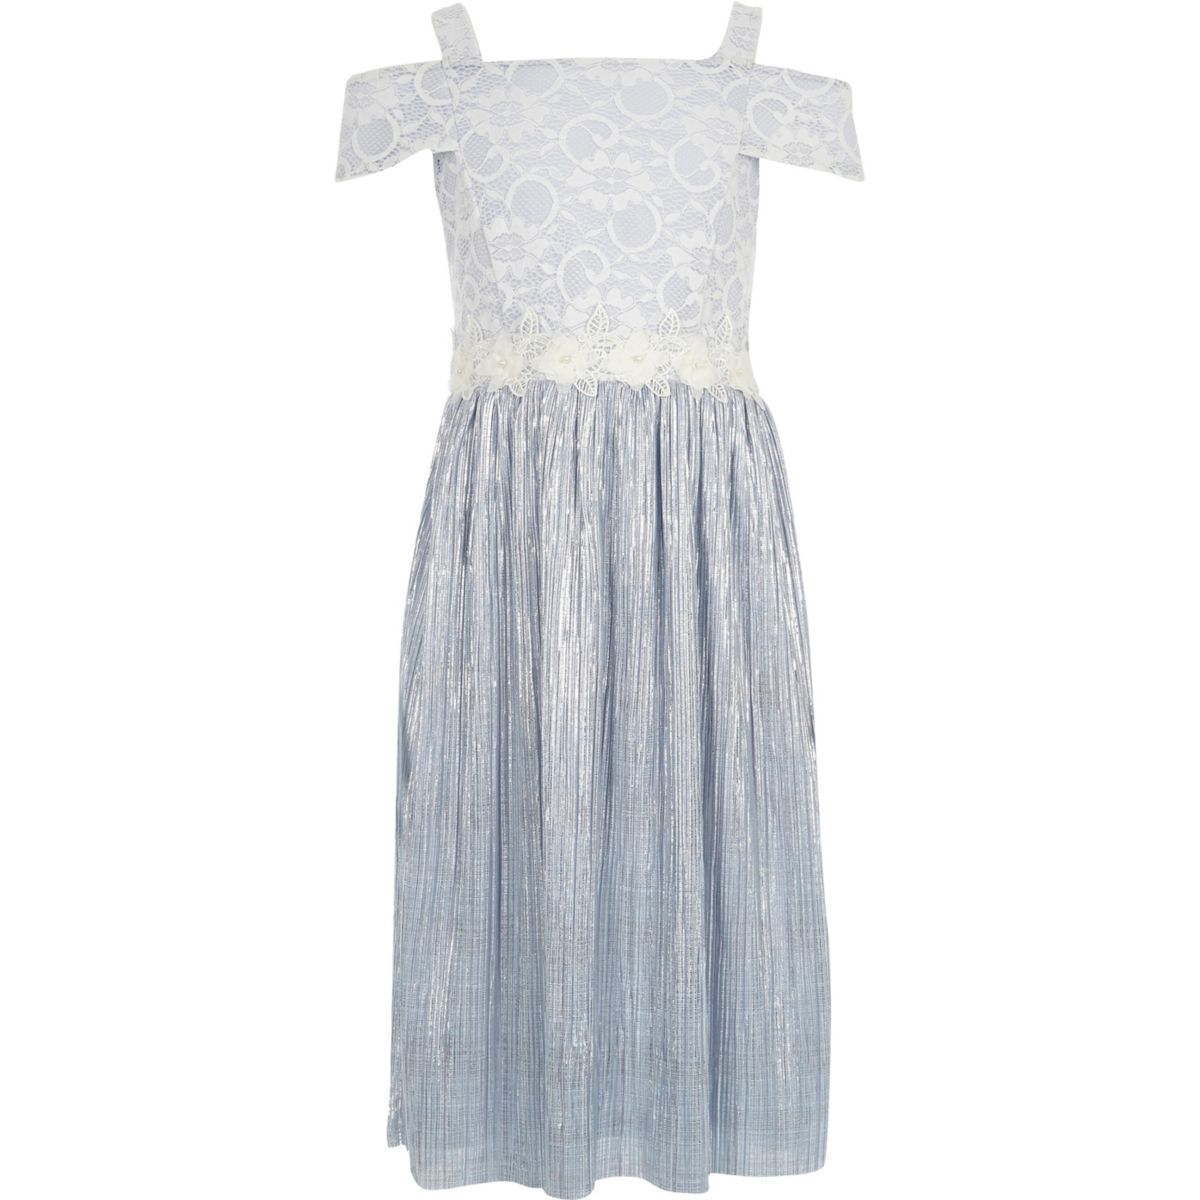 Girls light blue lace and plisse dress